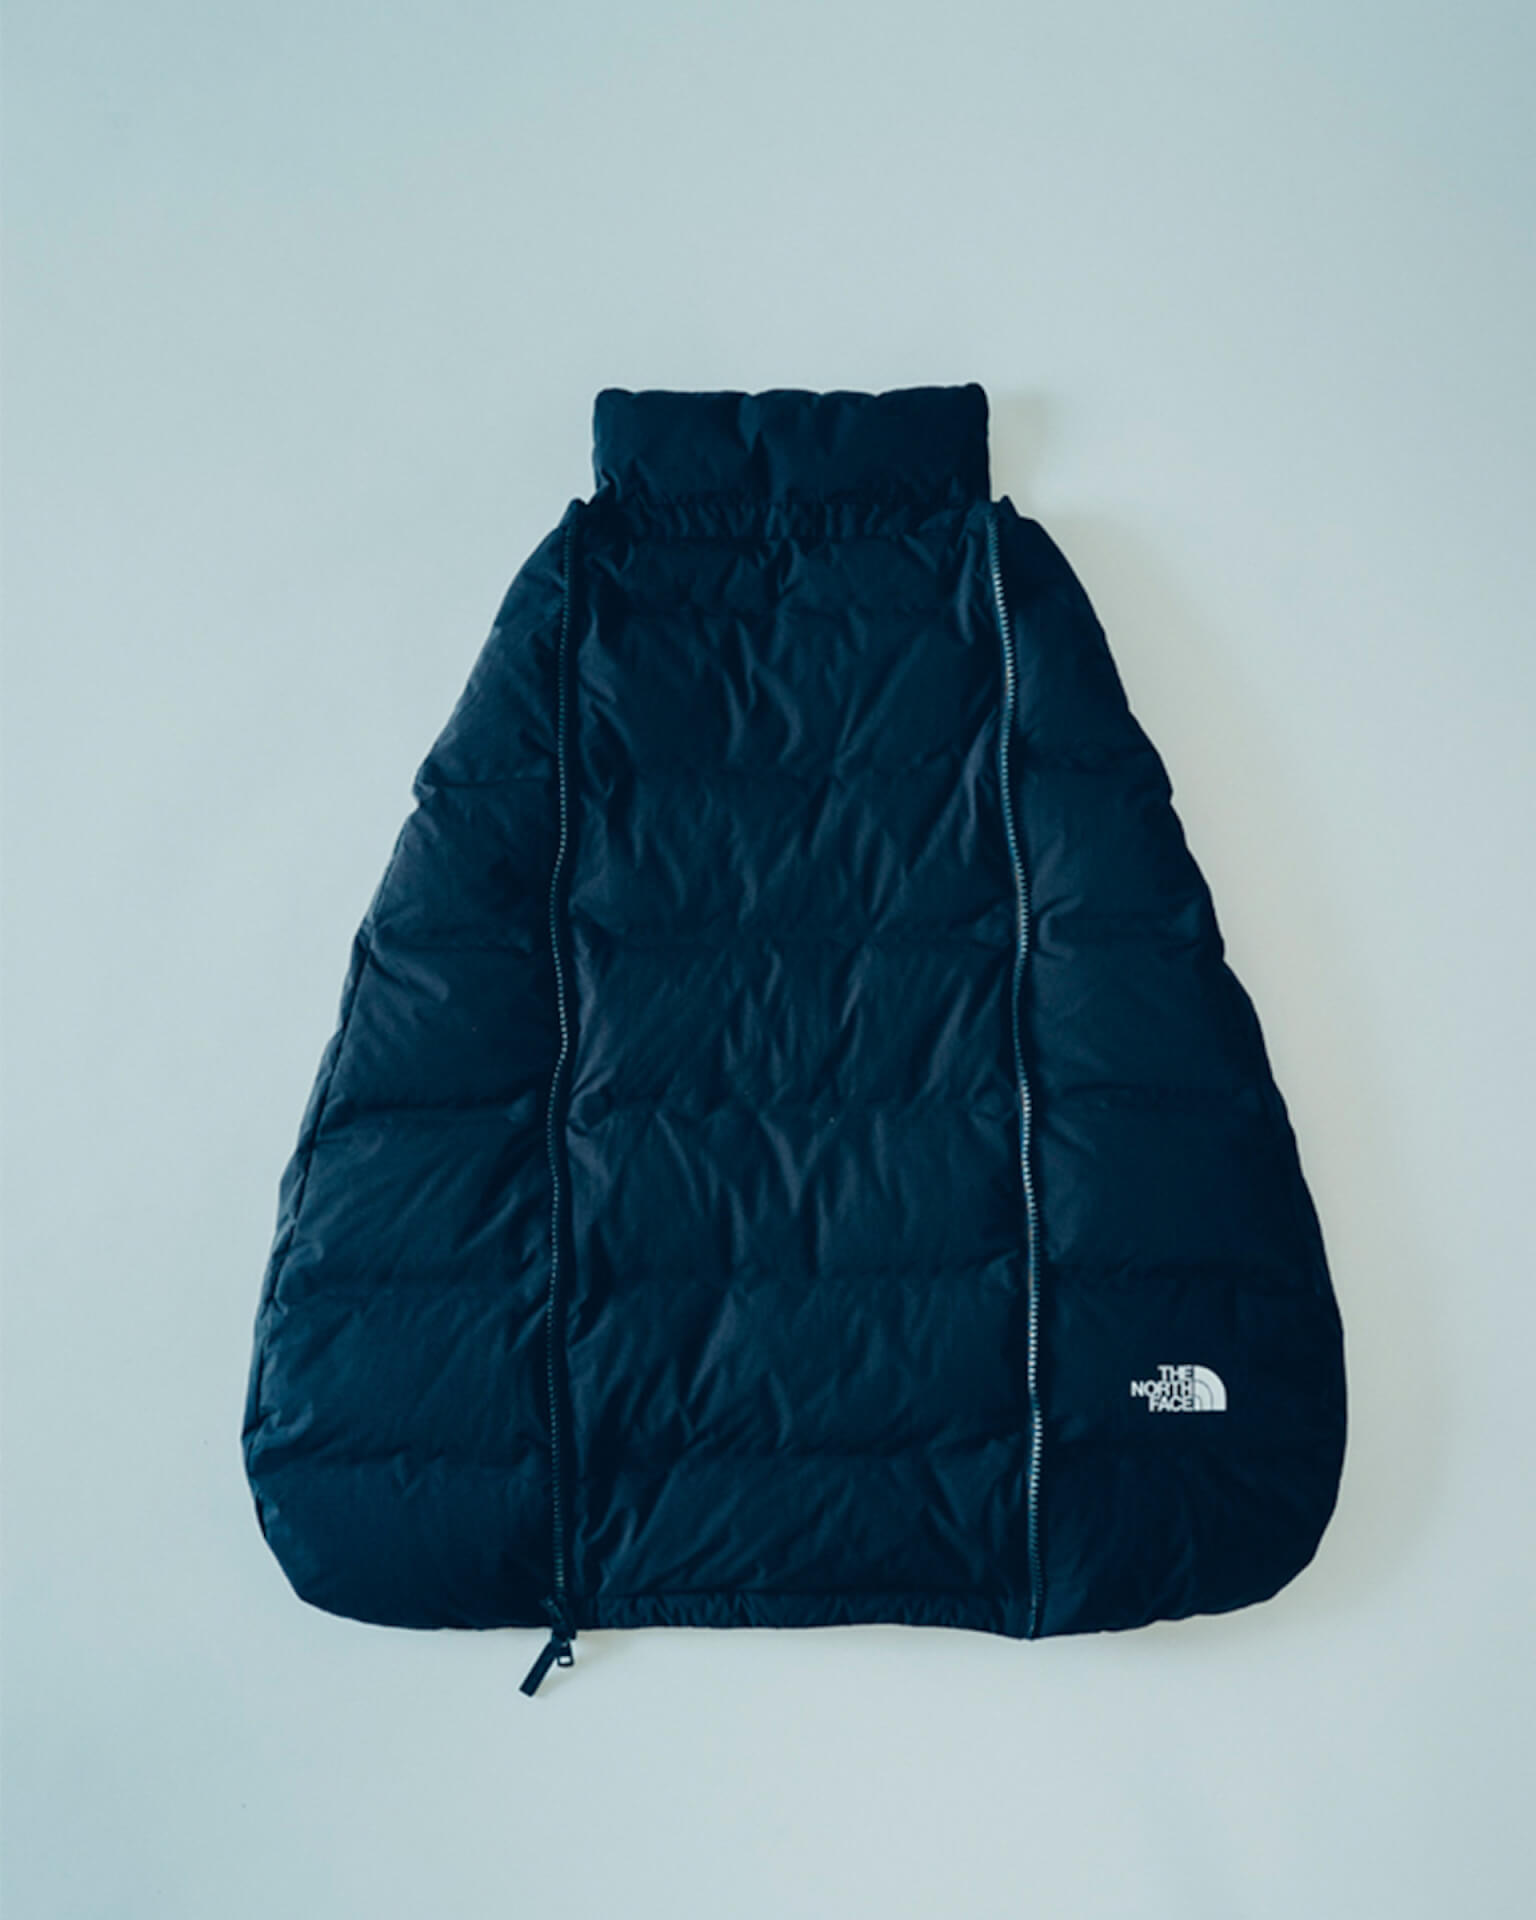 THE NORTH FACE、ママに優しい機能的マタニティウェアを6型展開で発売 life191007_thenorthface_2